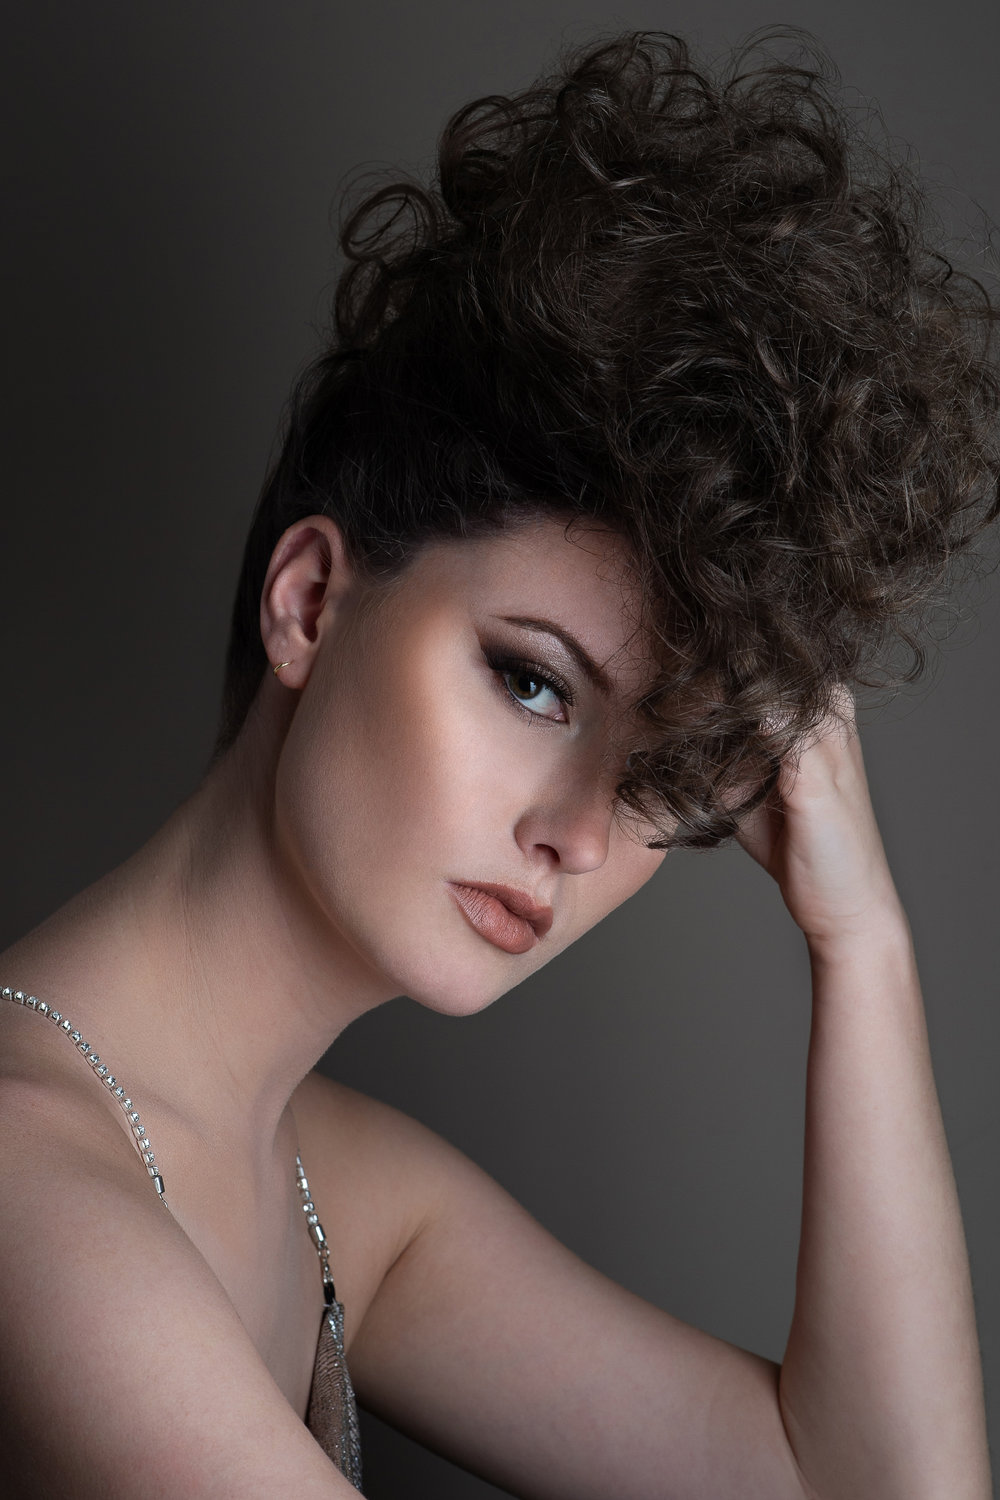 Beauty_Hairshoot a001 Social.jpg